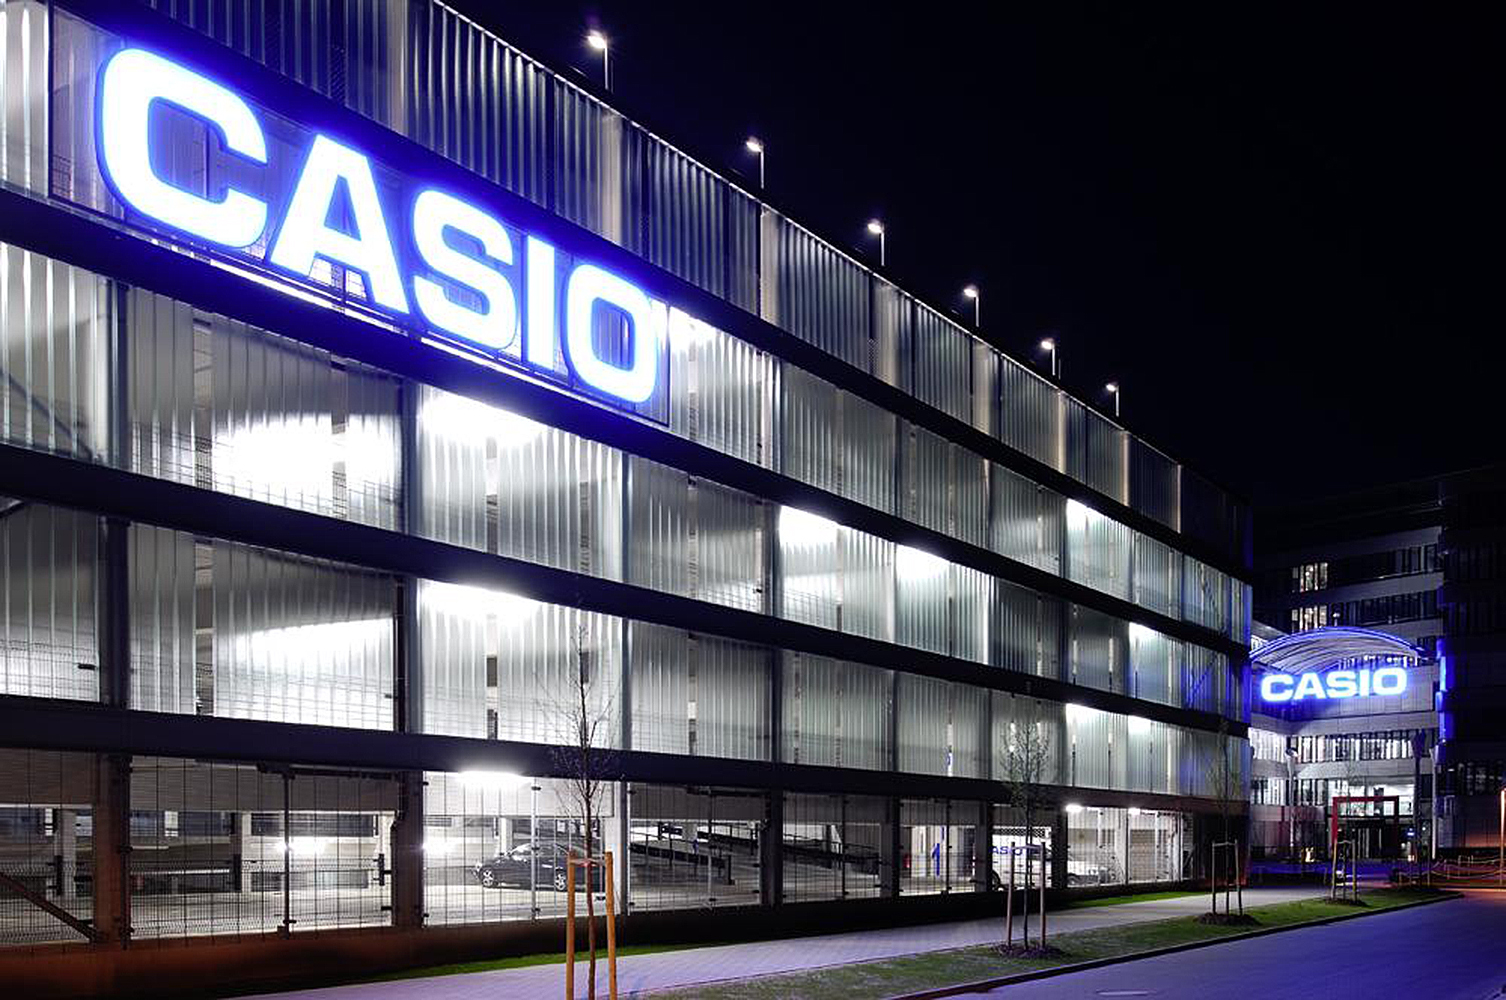 Casio Logistikzentrum Norderstedt